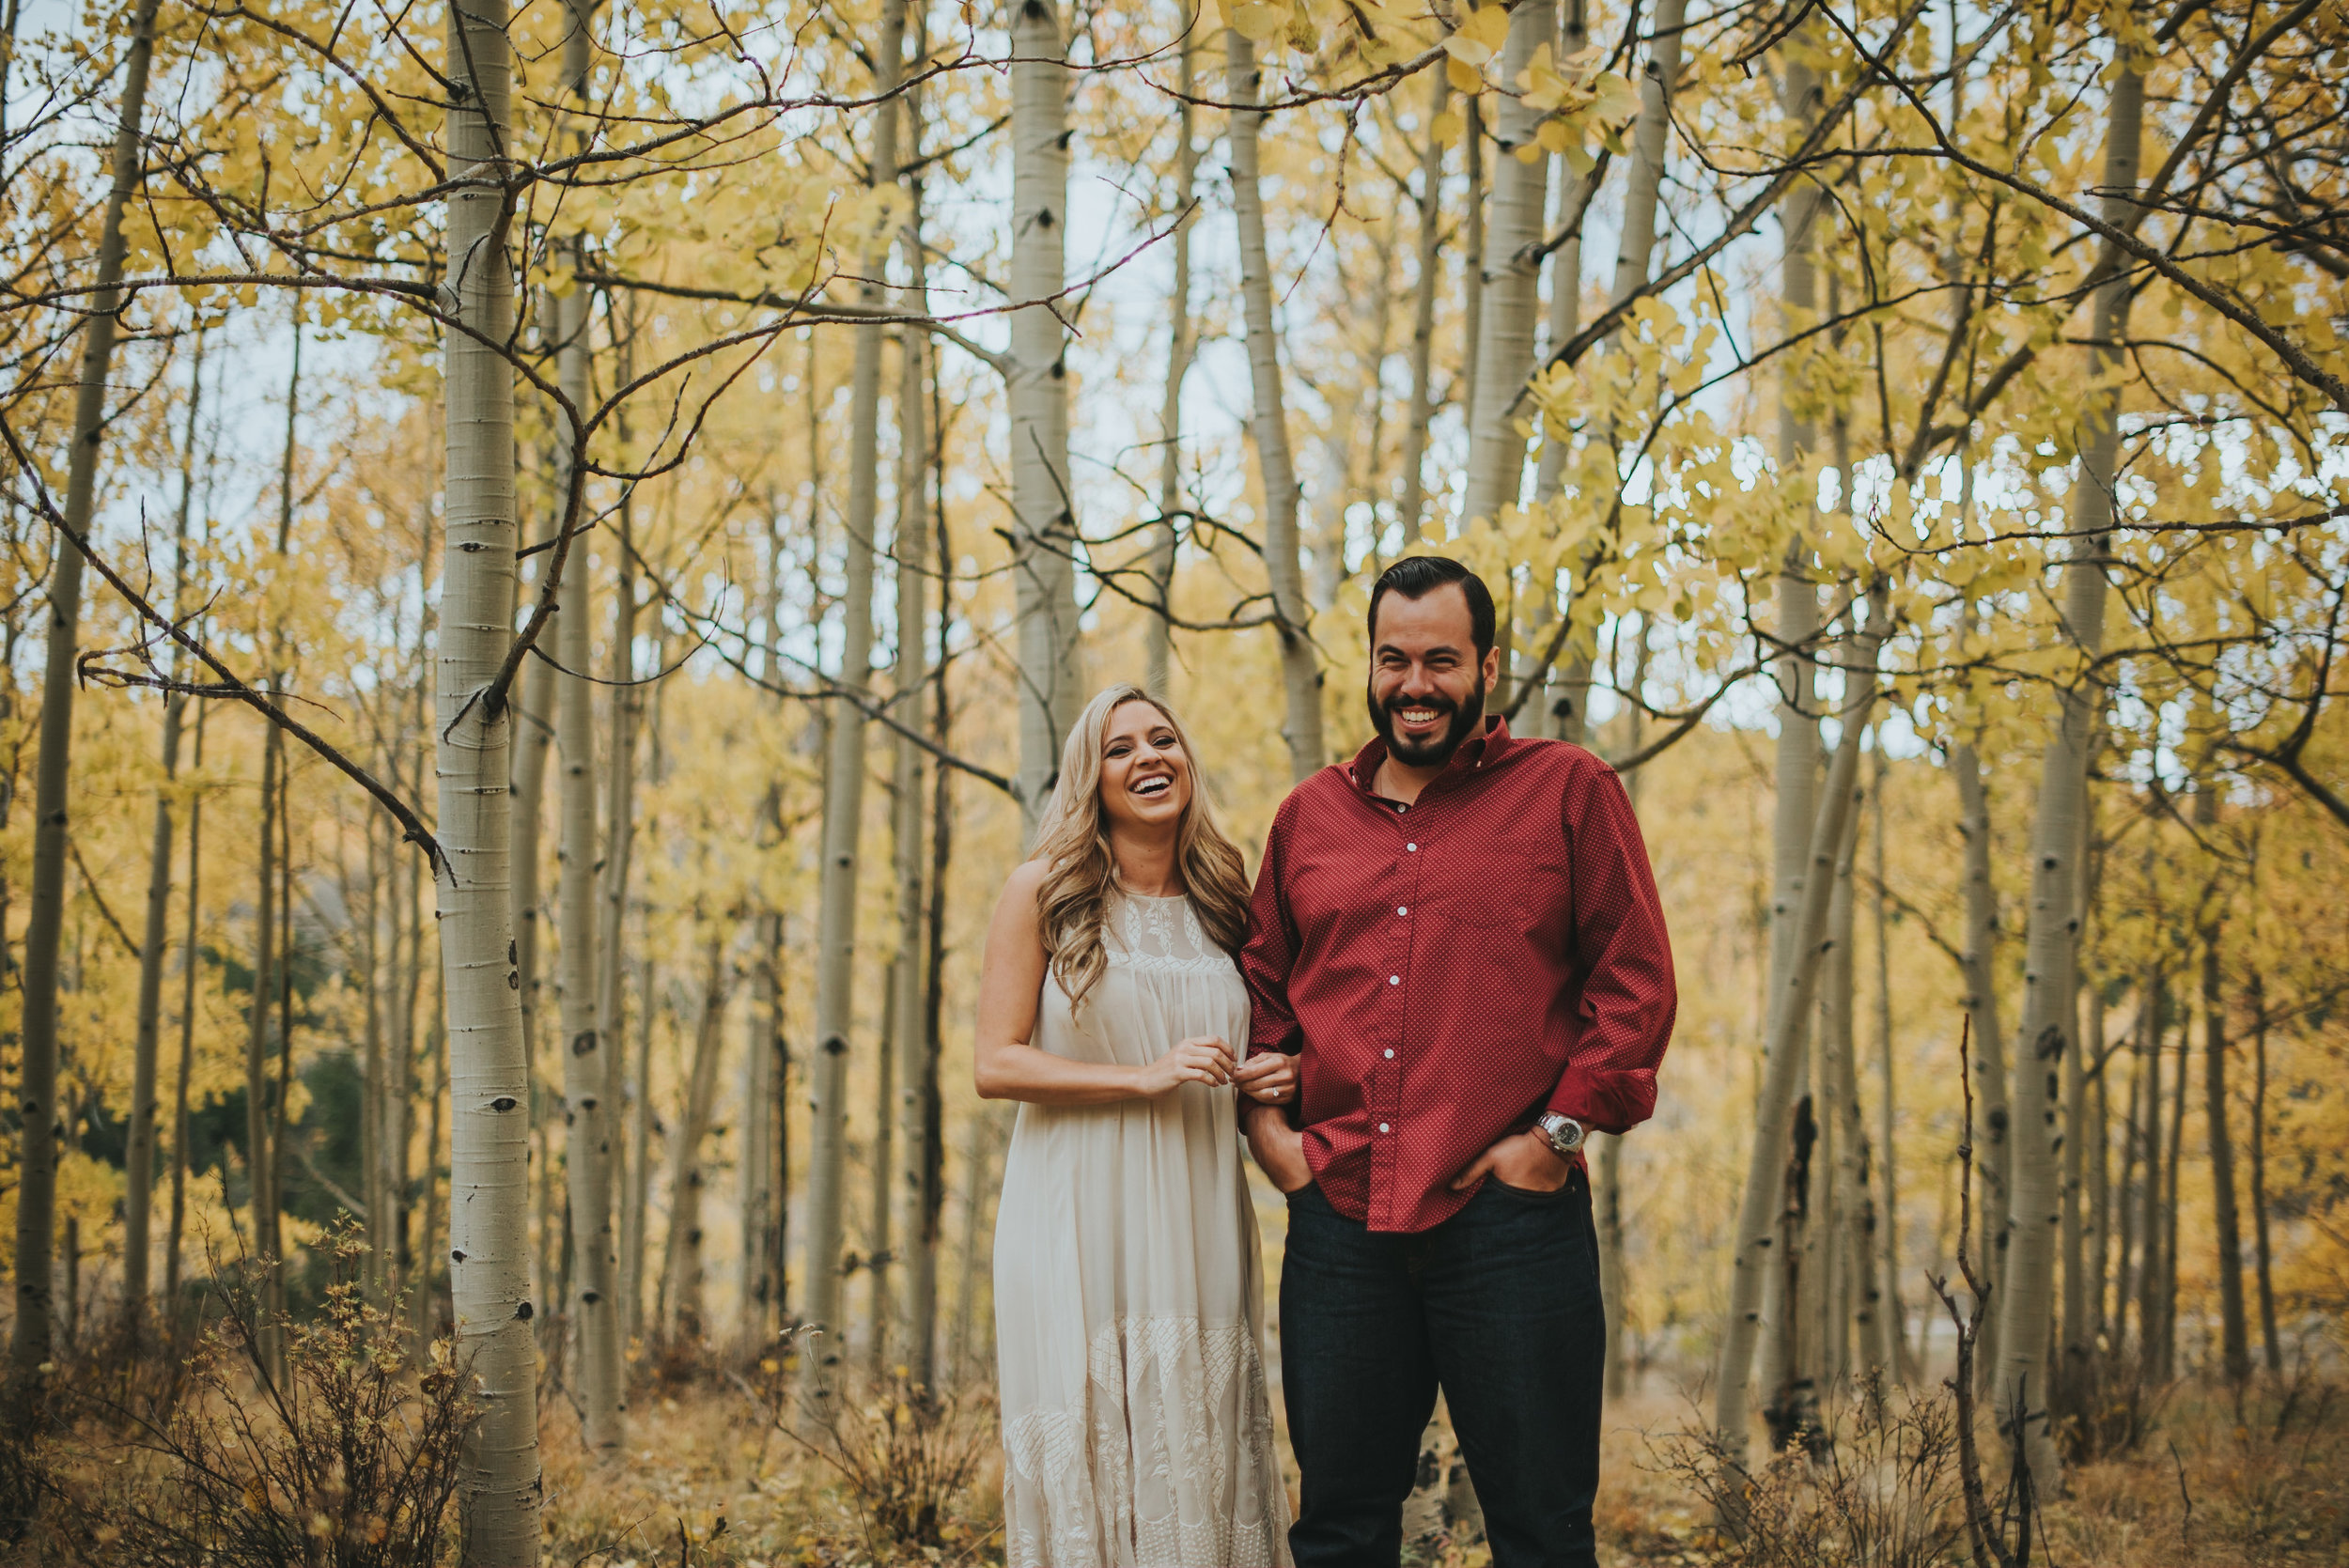 Didi and Mauri during Fall at Kenosha Pass. Kenosha pass is a great spot for Fall engagement photos! Love this area so much!